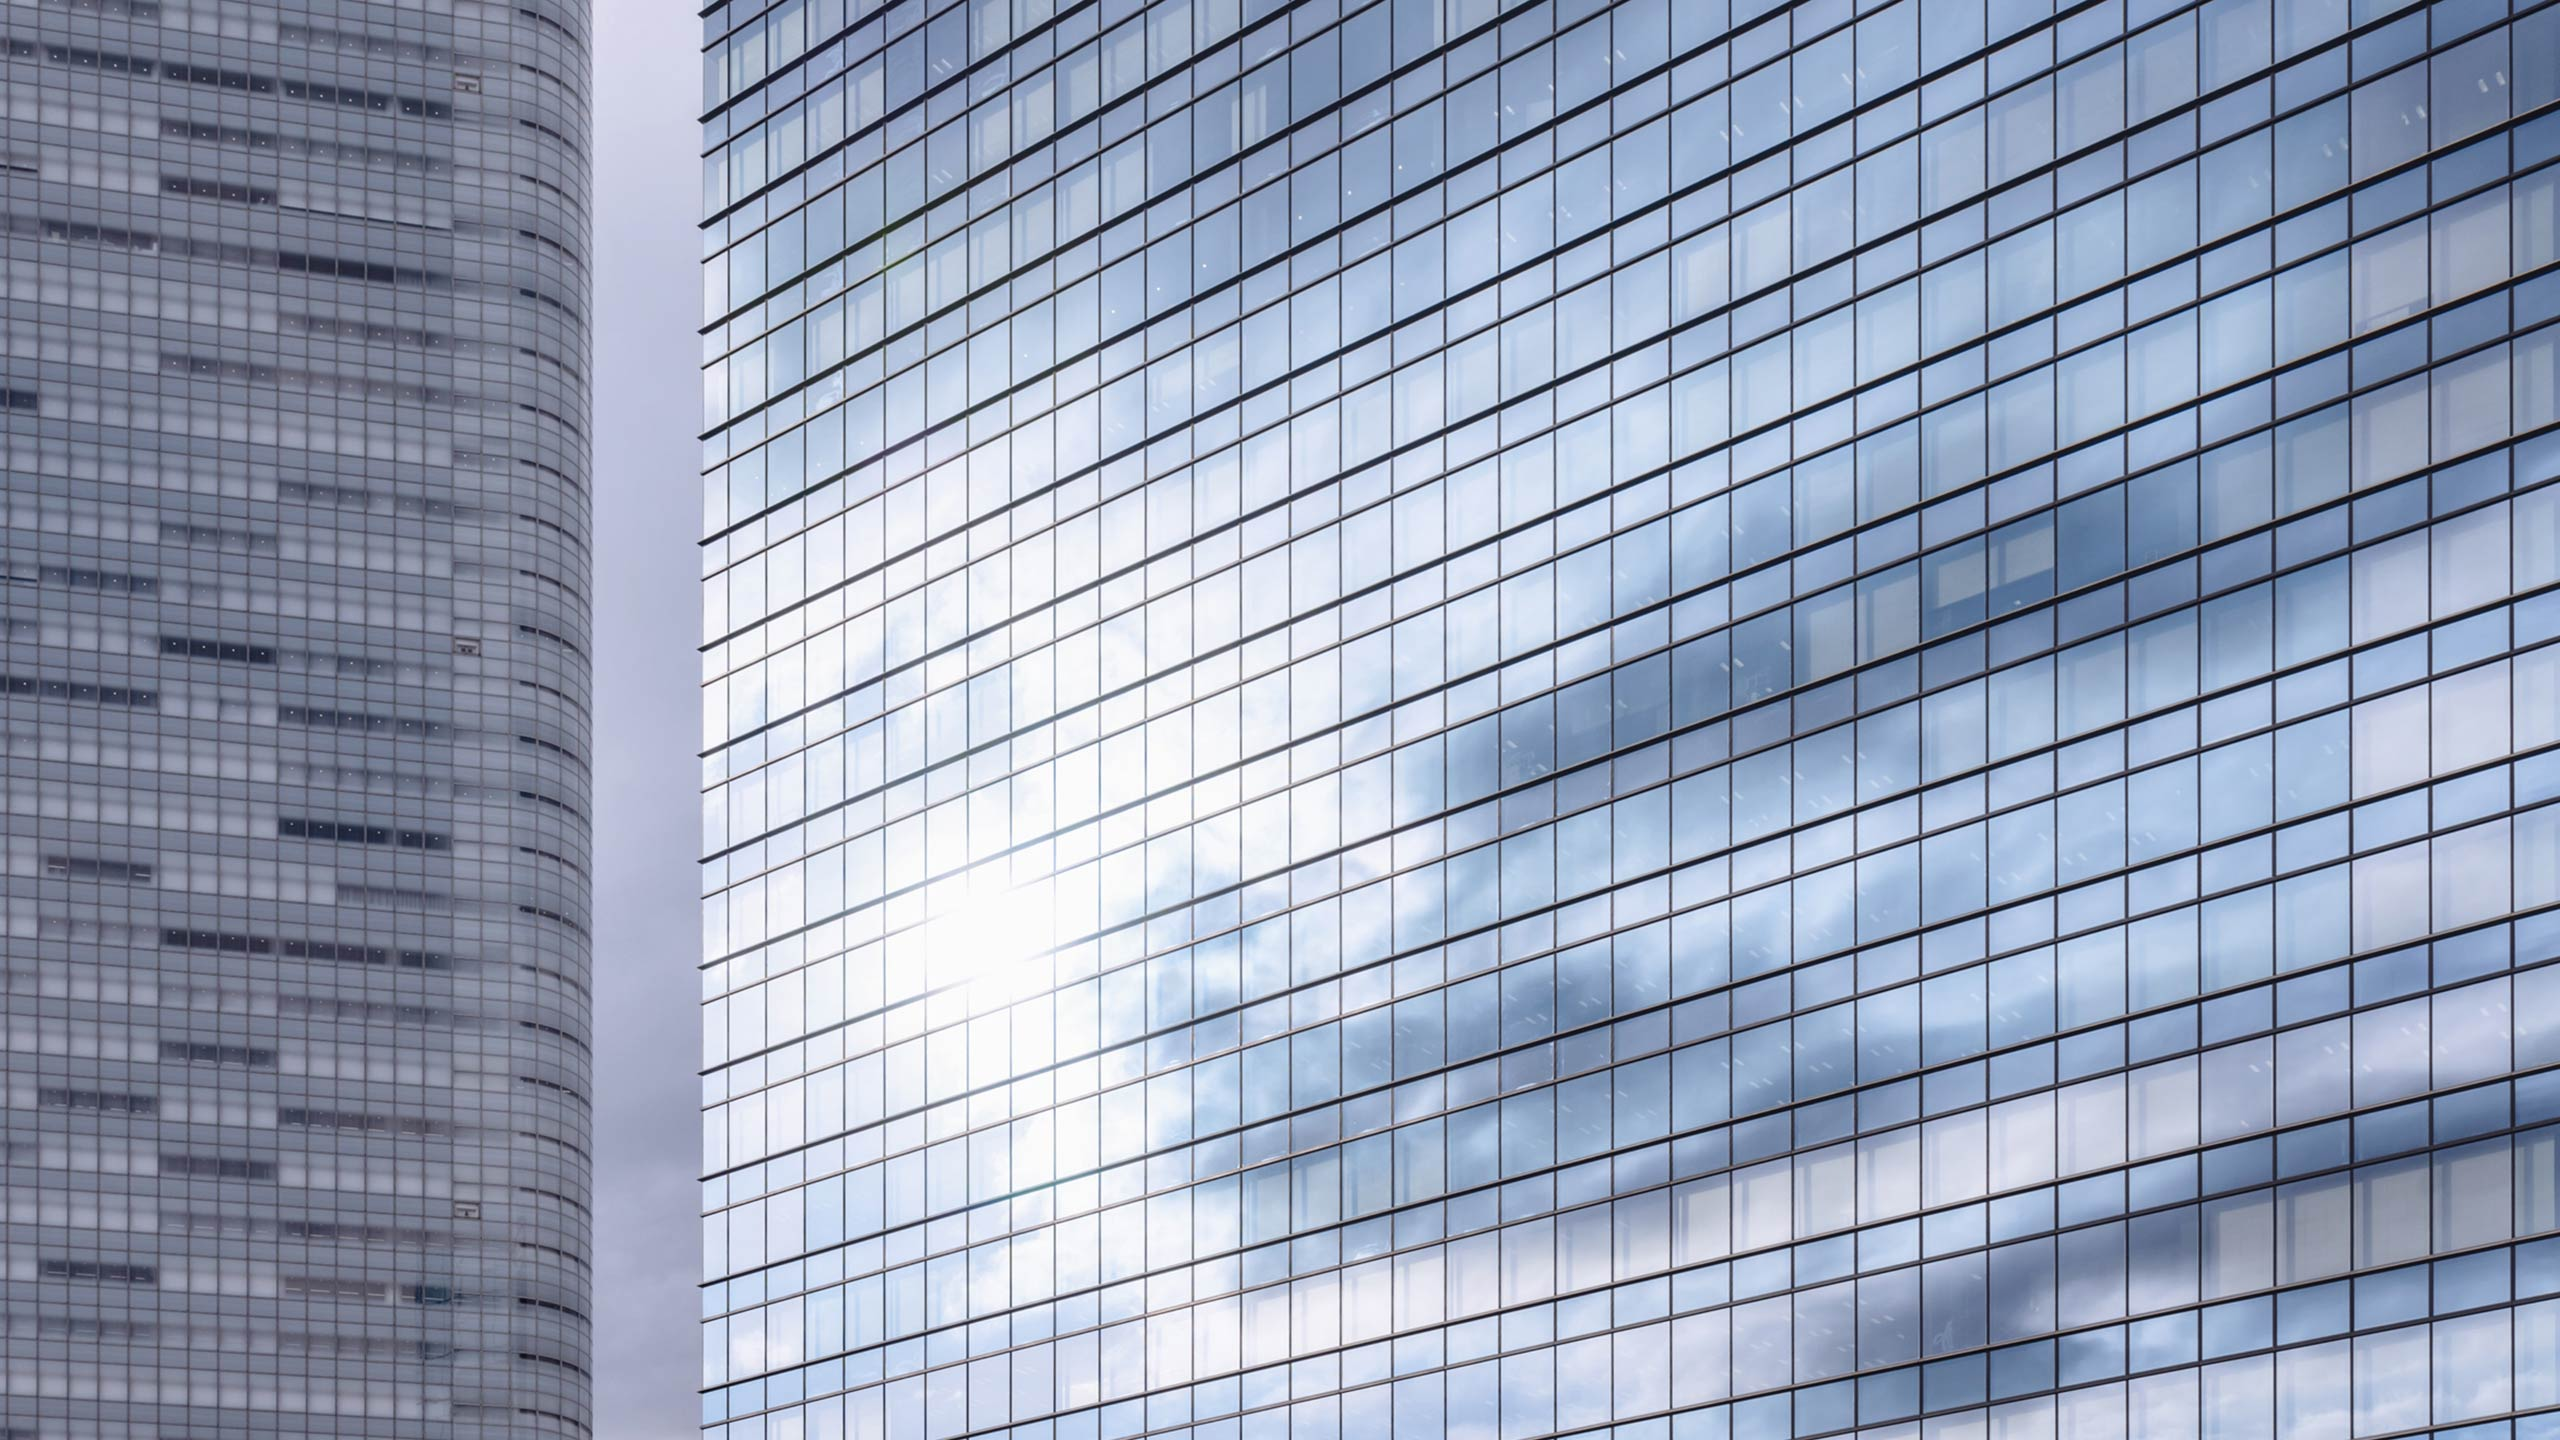 Image of a skyscraper with reflection of clouds